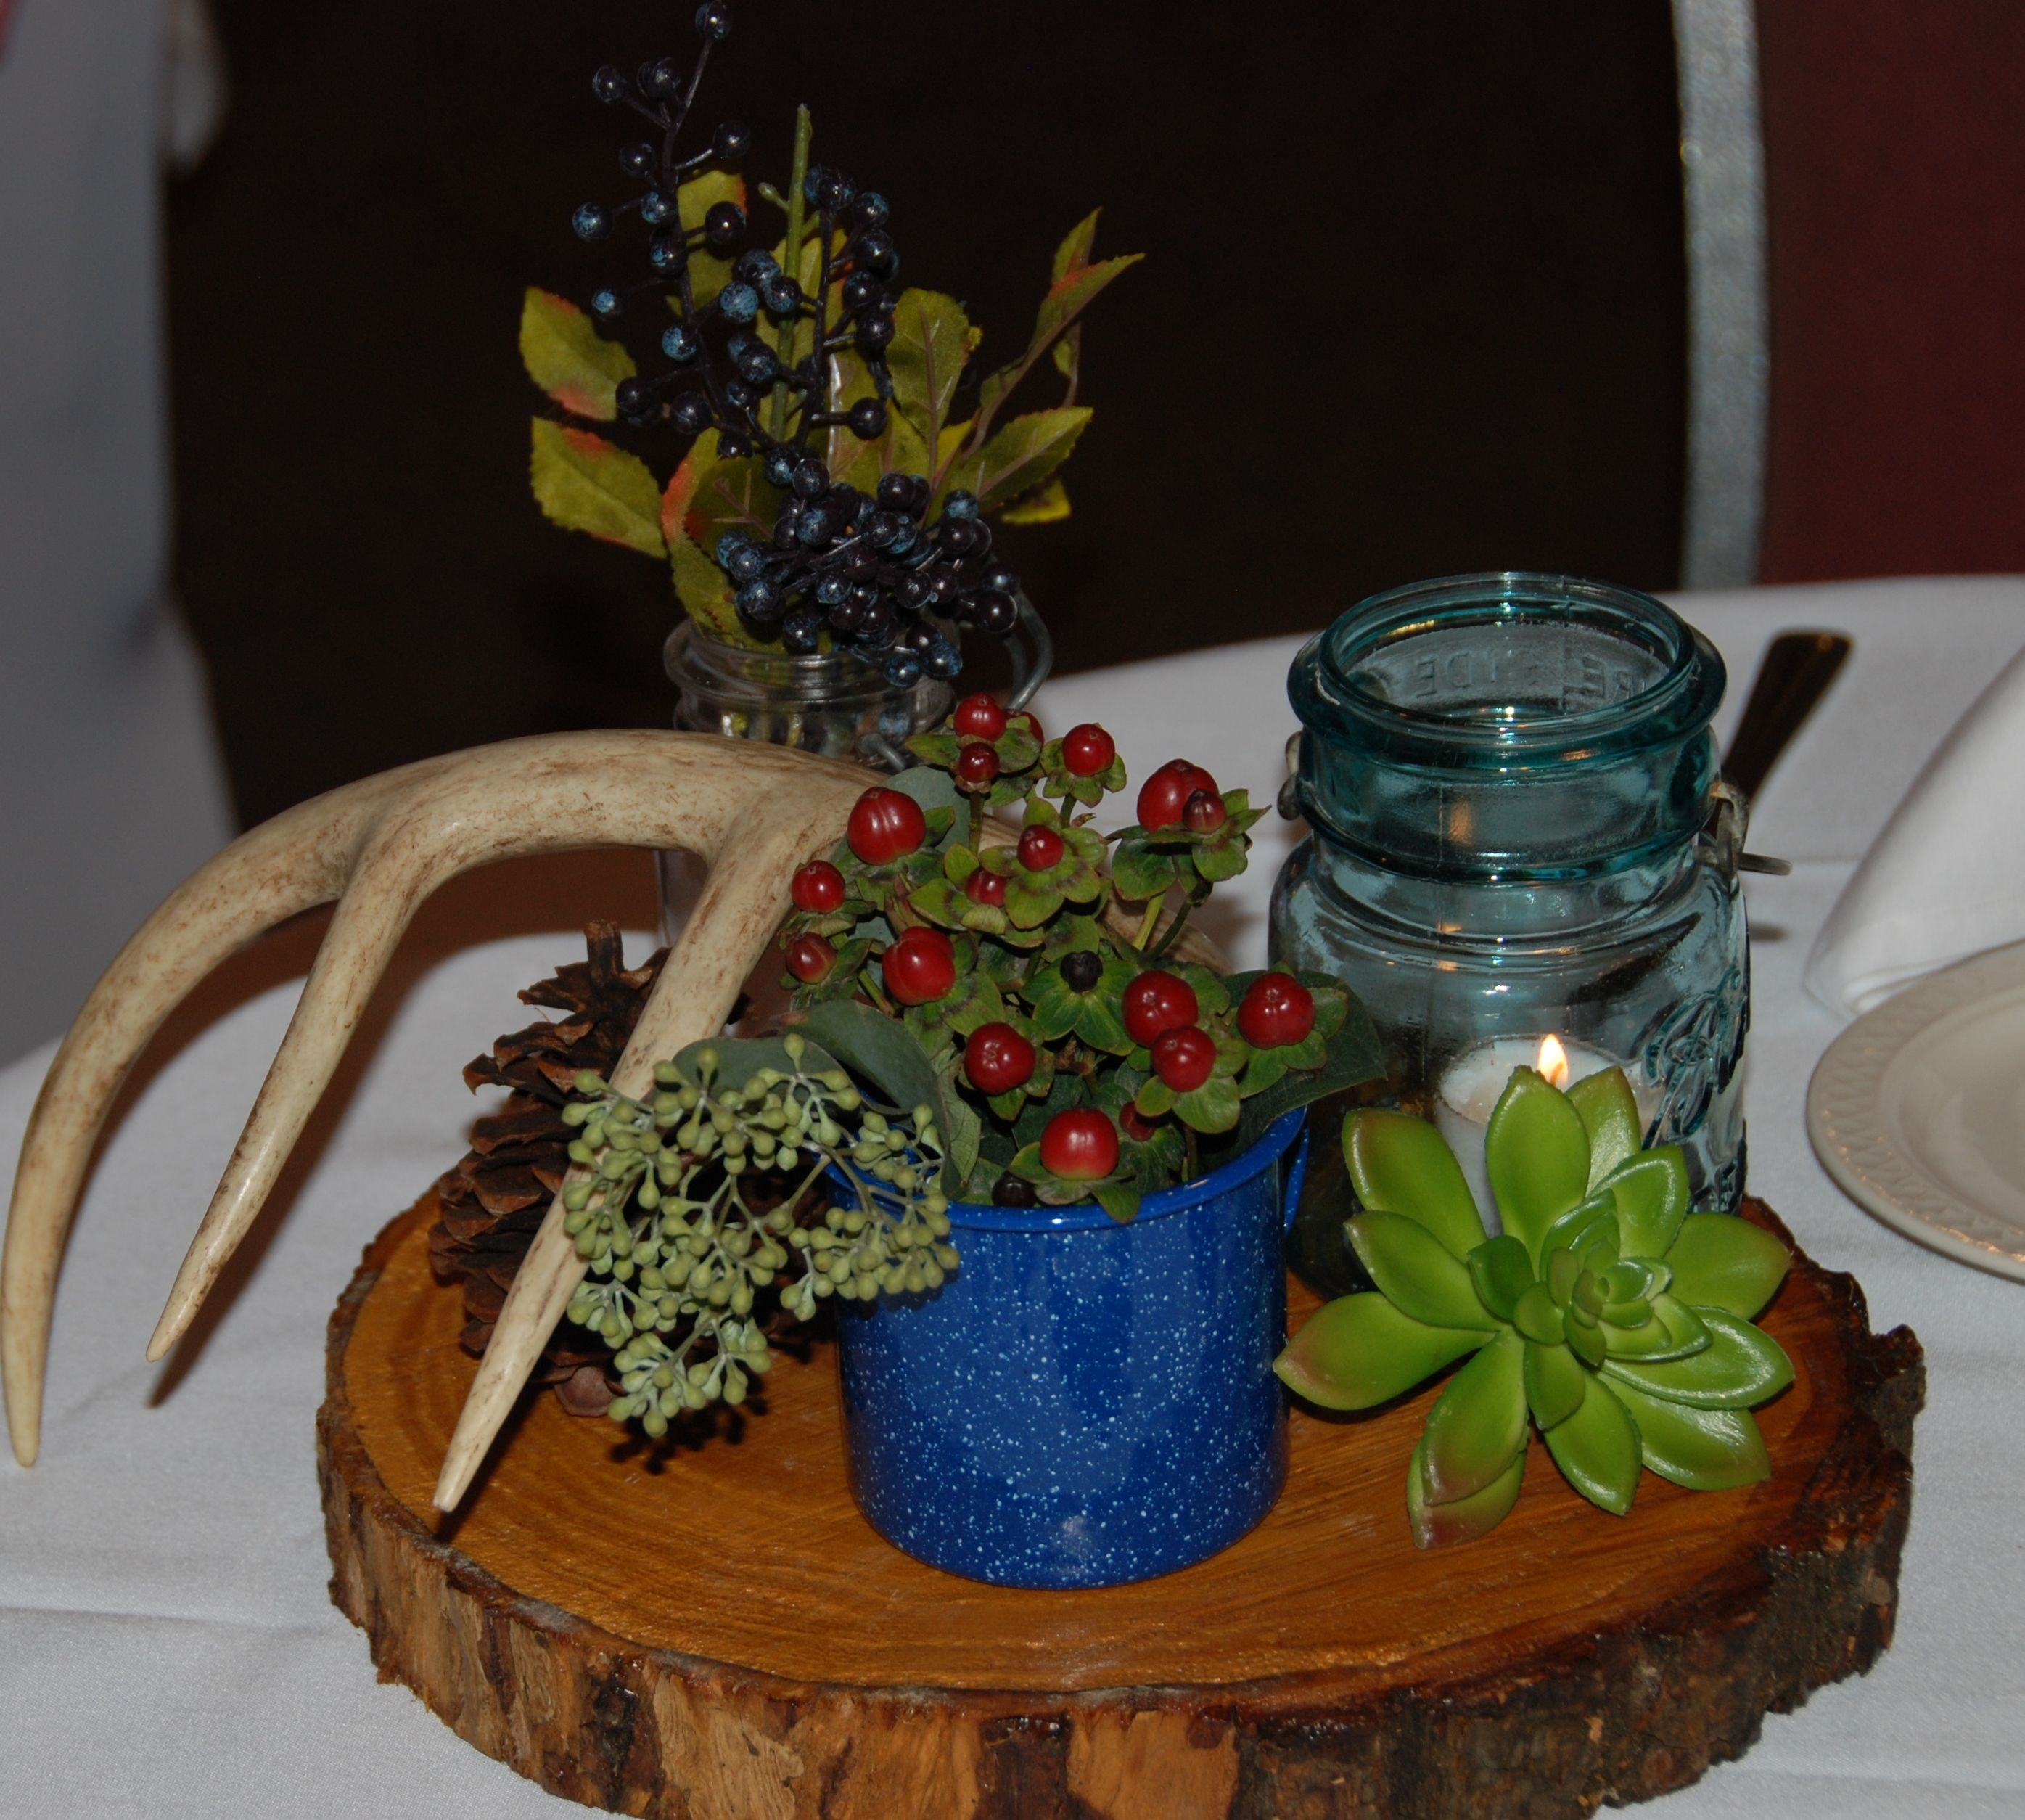 Rustic Wedding Decorations For Indoor And Outdoor Settings: Rustic Outdoor Wedding Centerpiece, Antlers, Camping